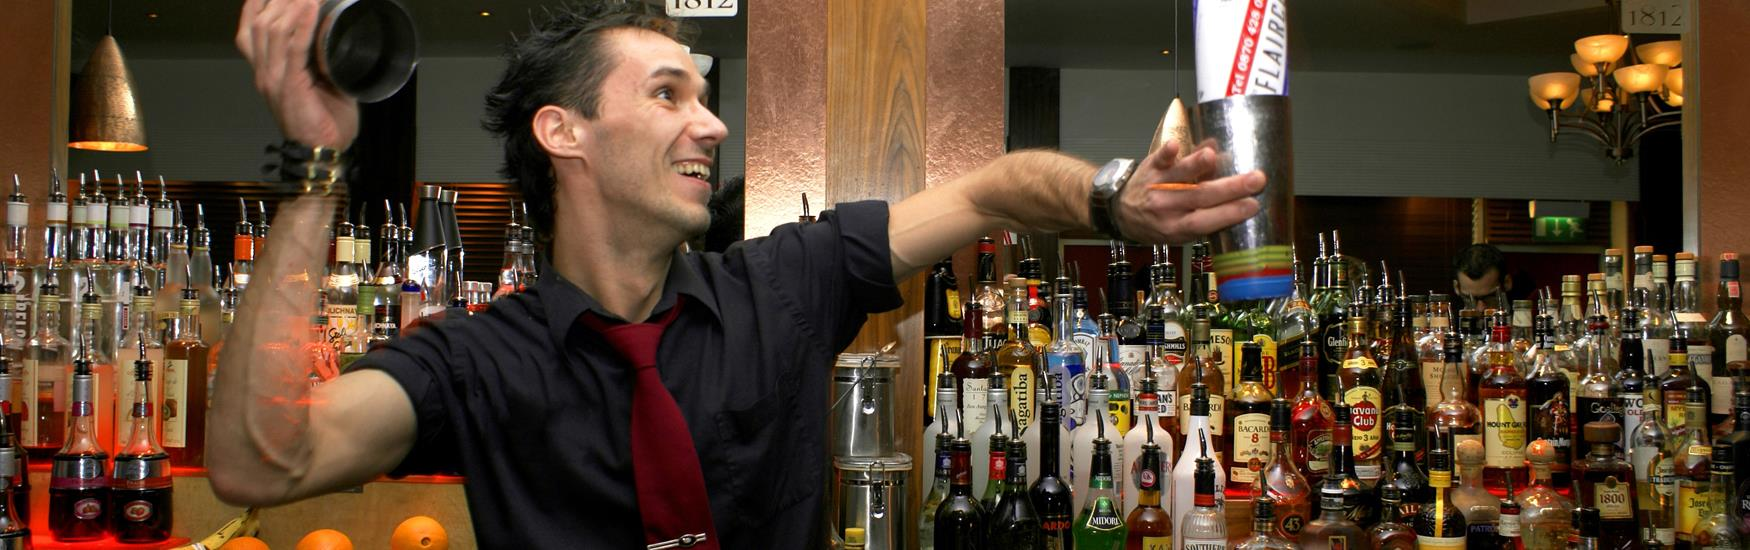 Mixologist flair in Bournemouth bar - food and drink experiences